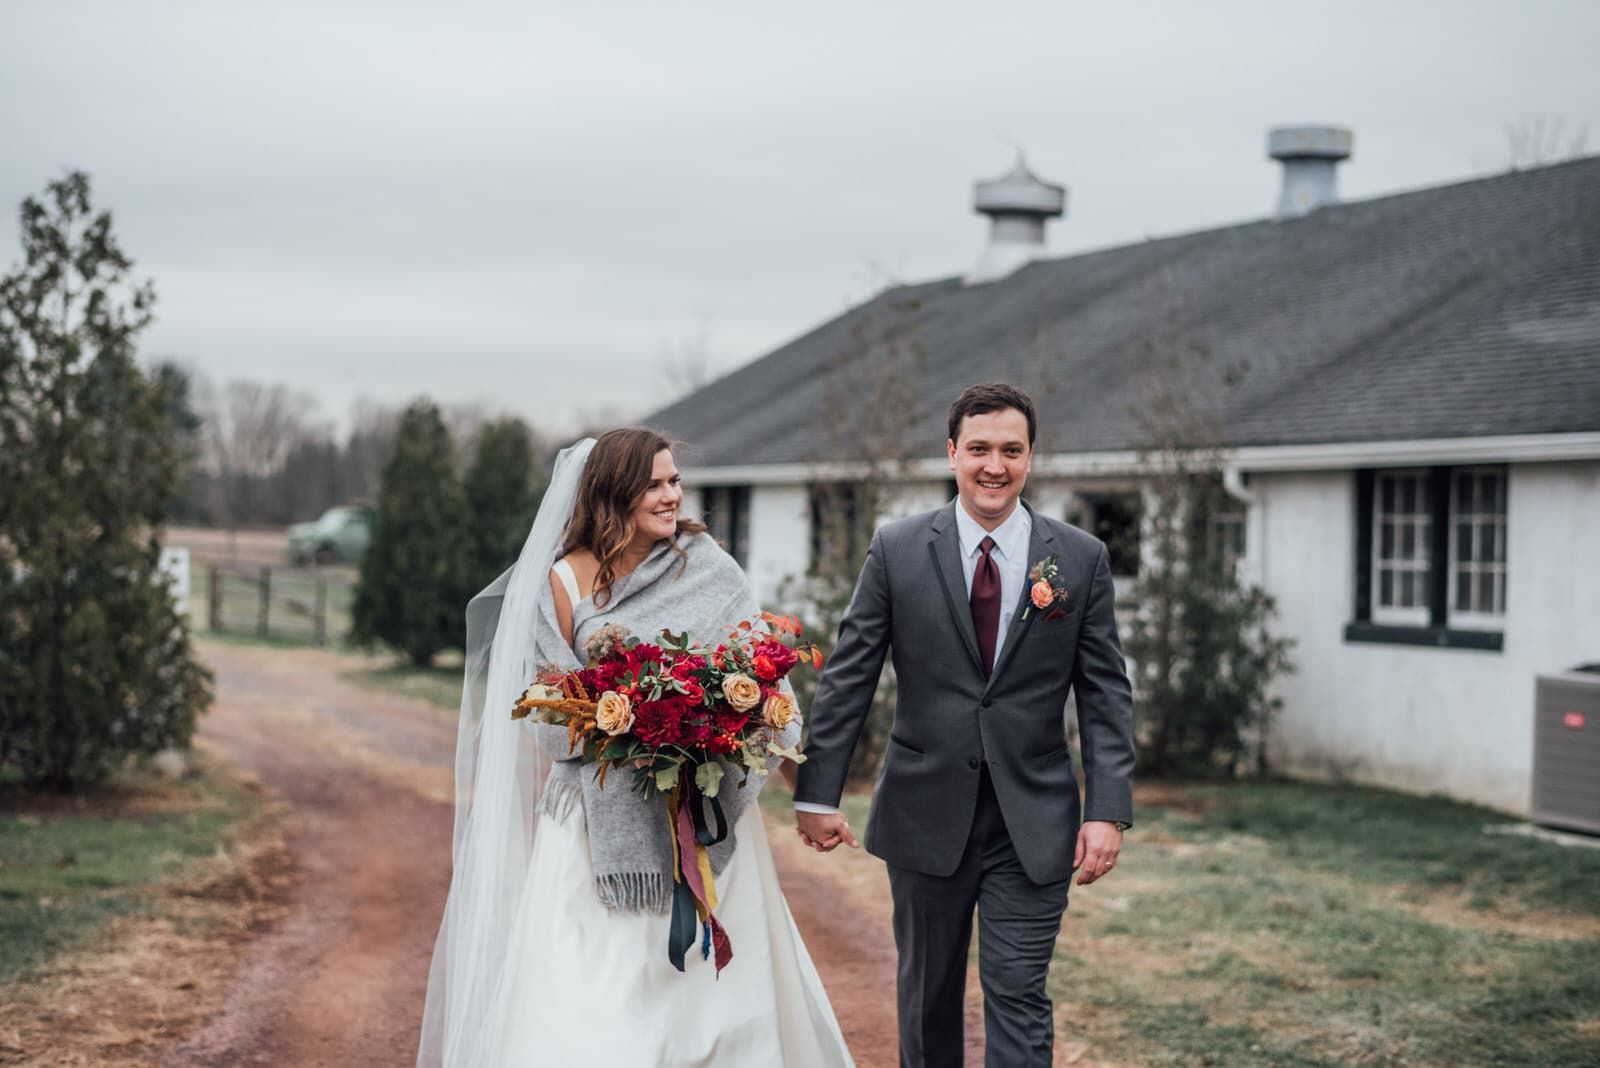 Rustic Barn Wedding Venue - Durham Hill Farm